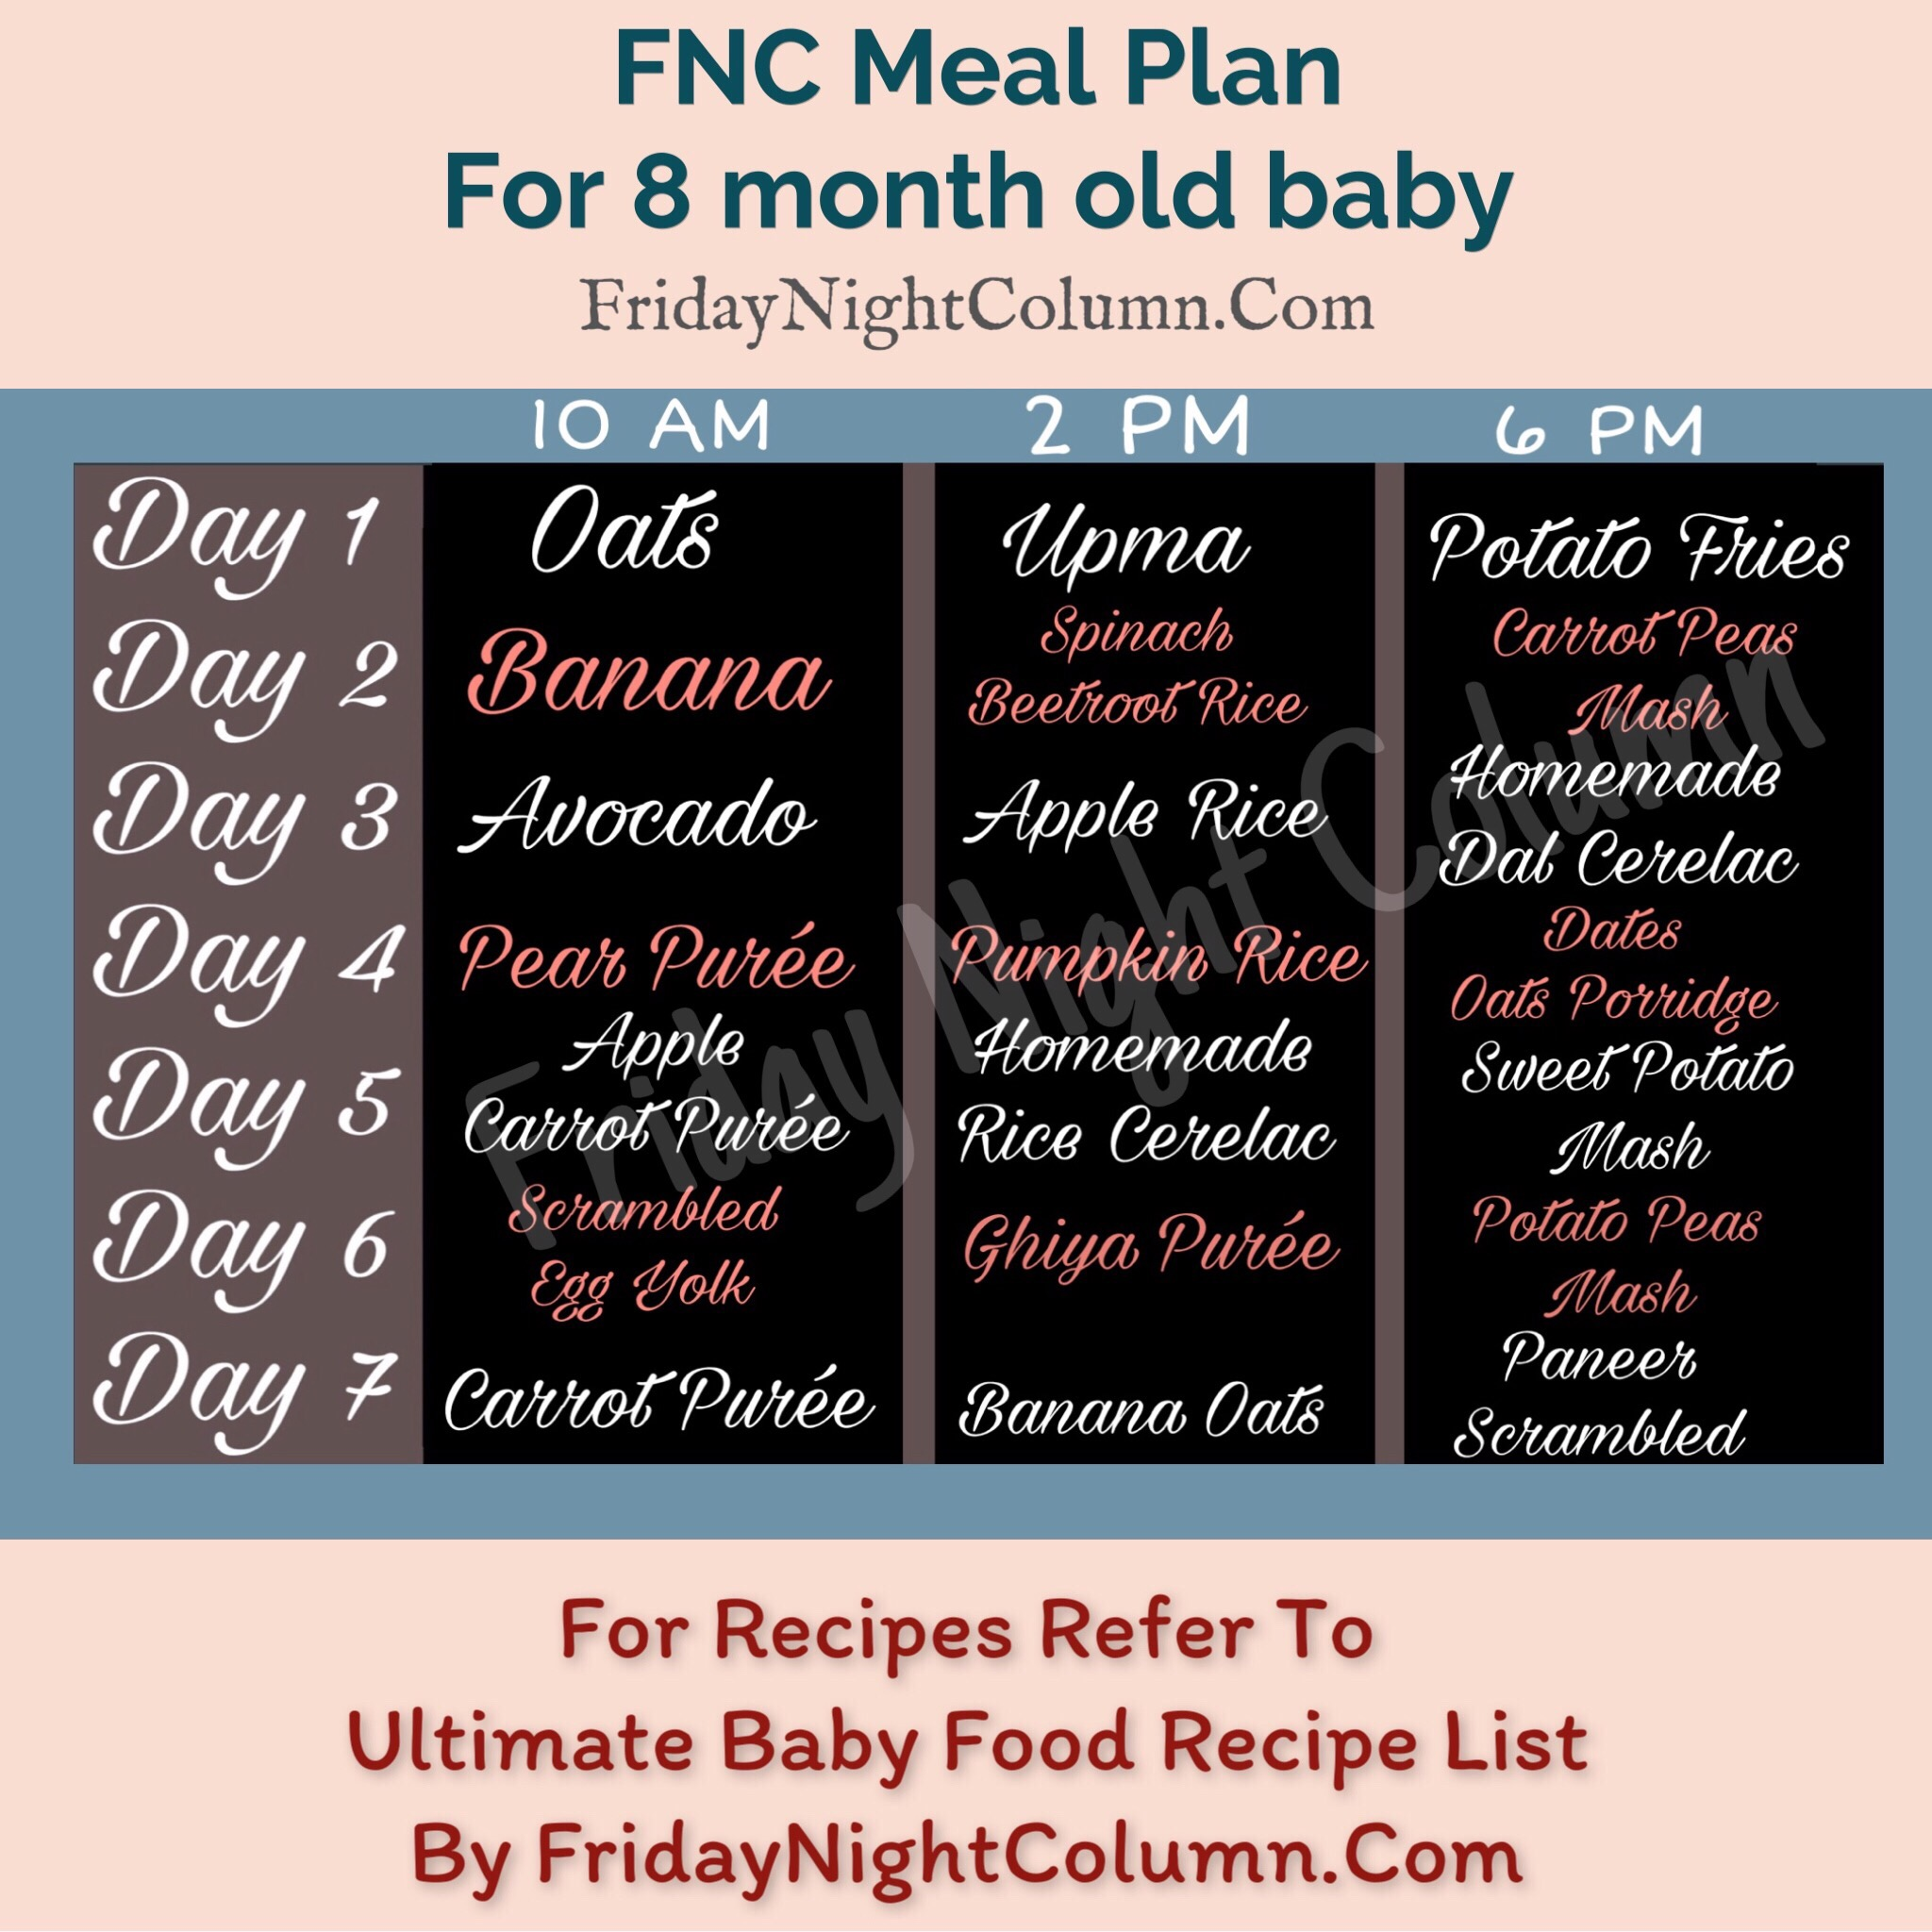 Fnc Meal Plan For Babies 6 To 8 Months Friday Night Column